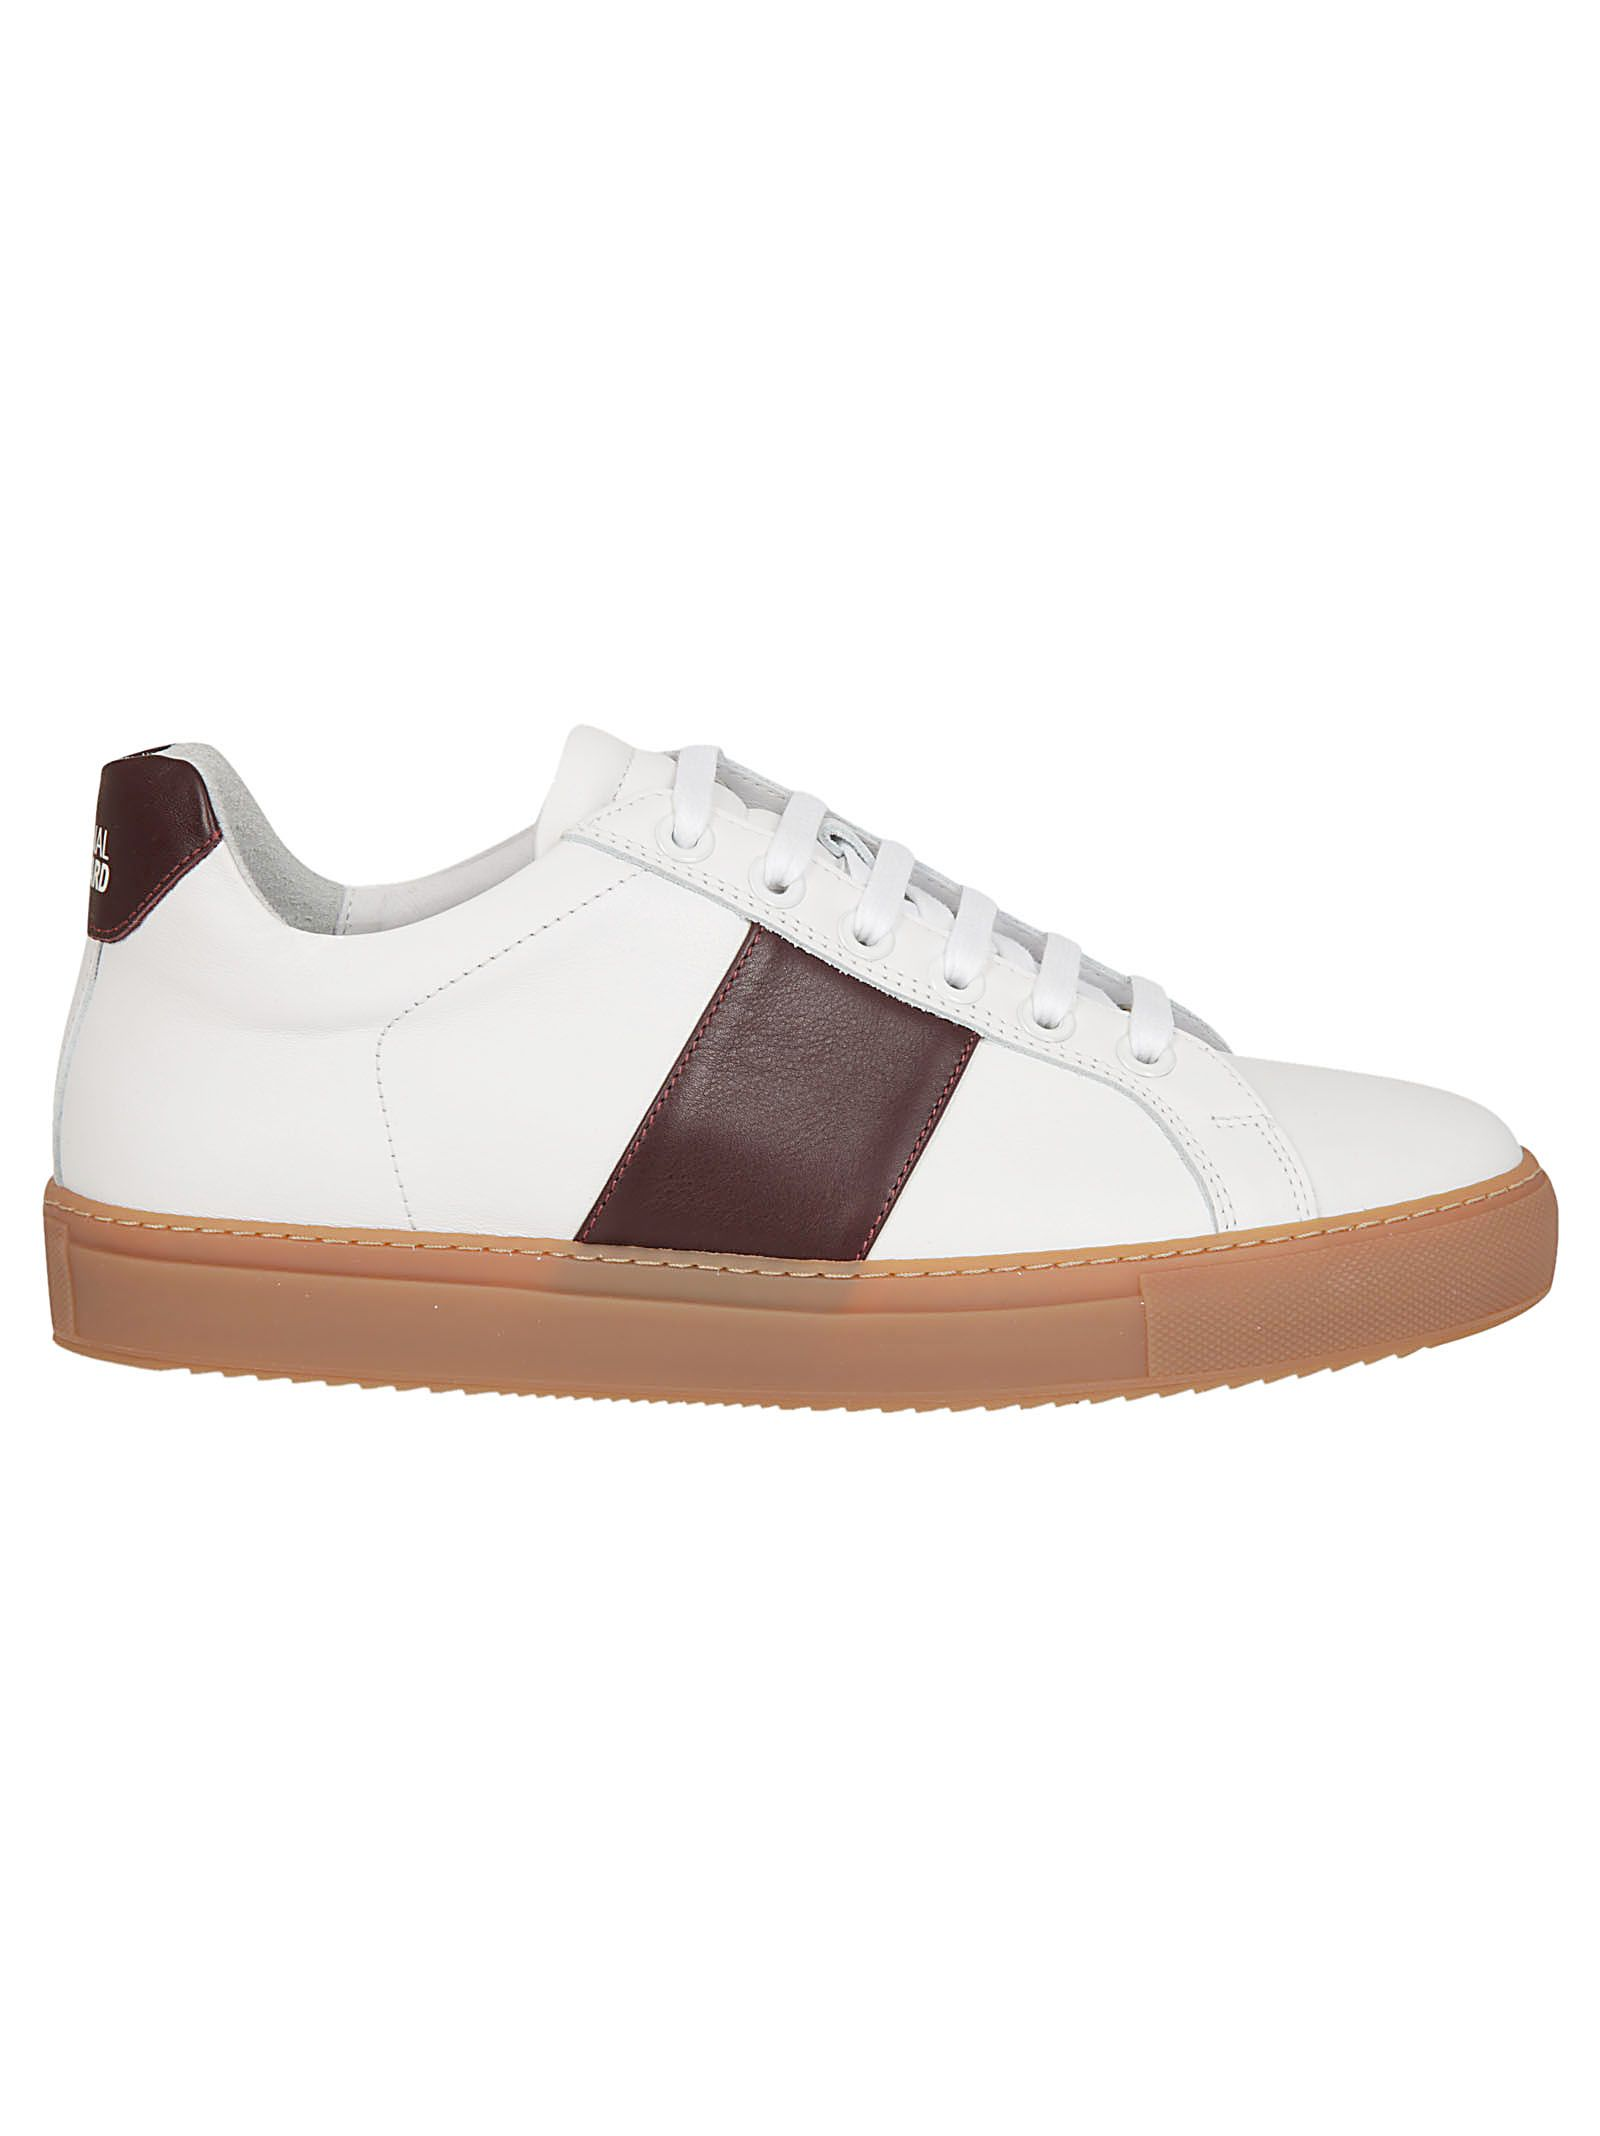 NATIONAL STANDARD Classic Sneakers in Bianca/Mosto